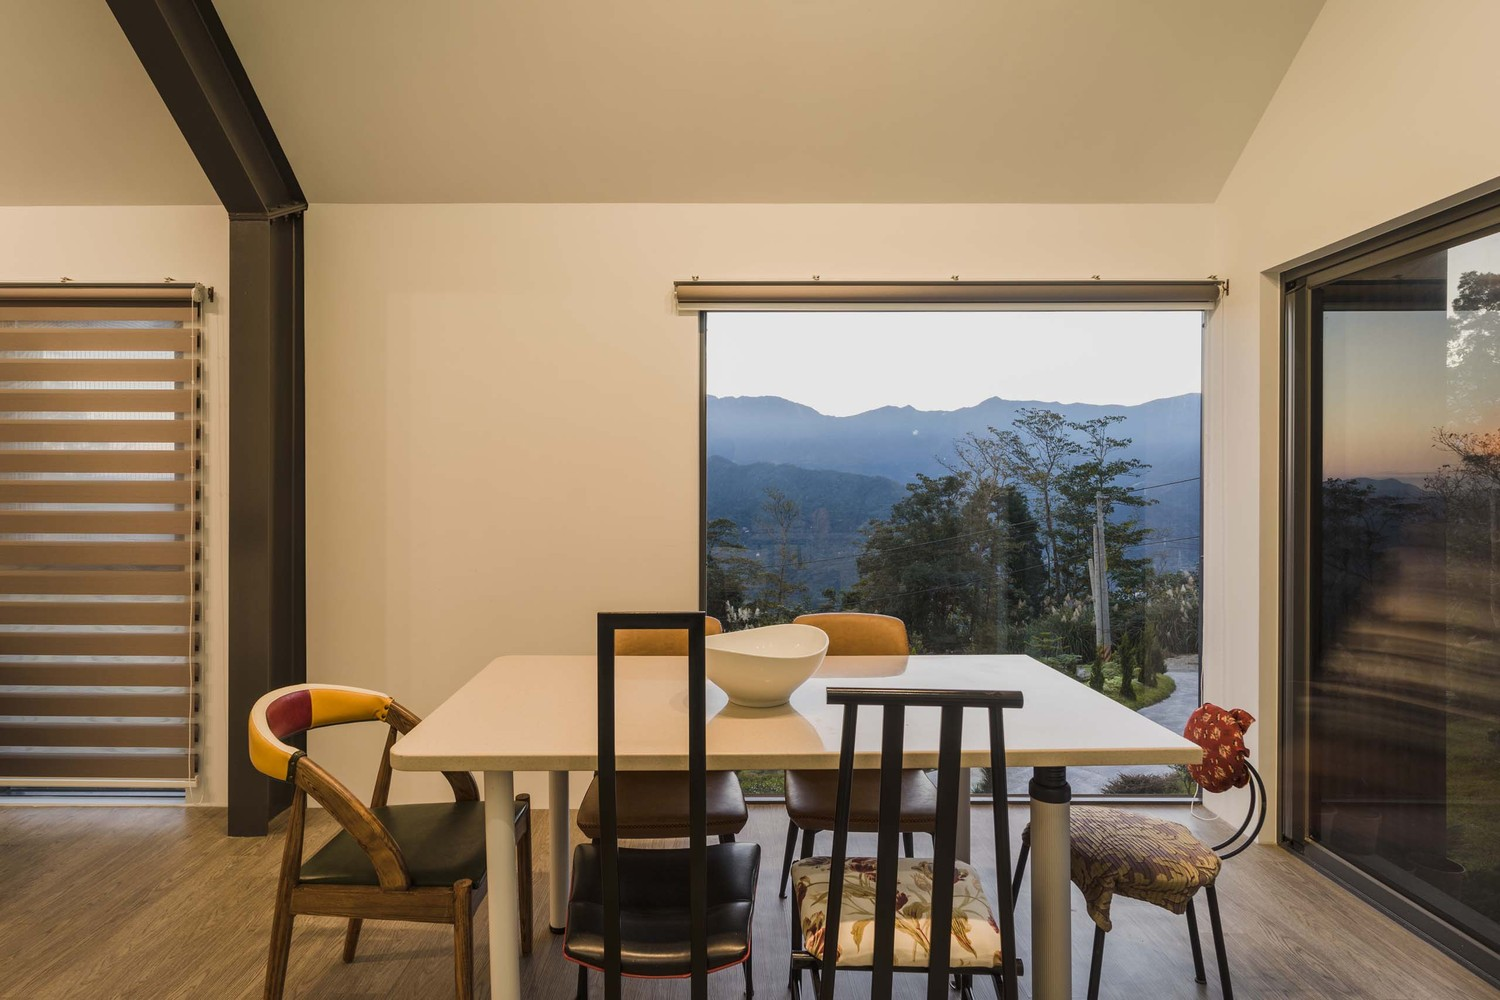 A square-shaped dining table with diverse chairs around it creates a very casual and friendly vibe